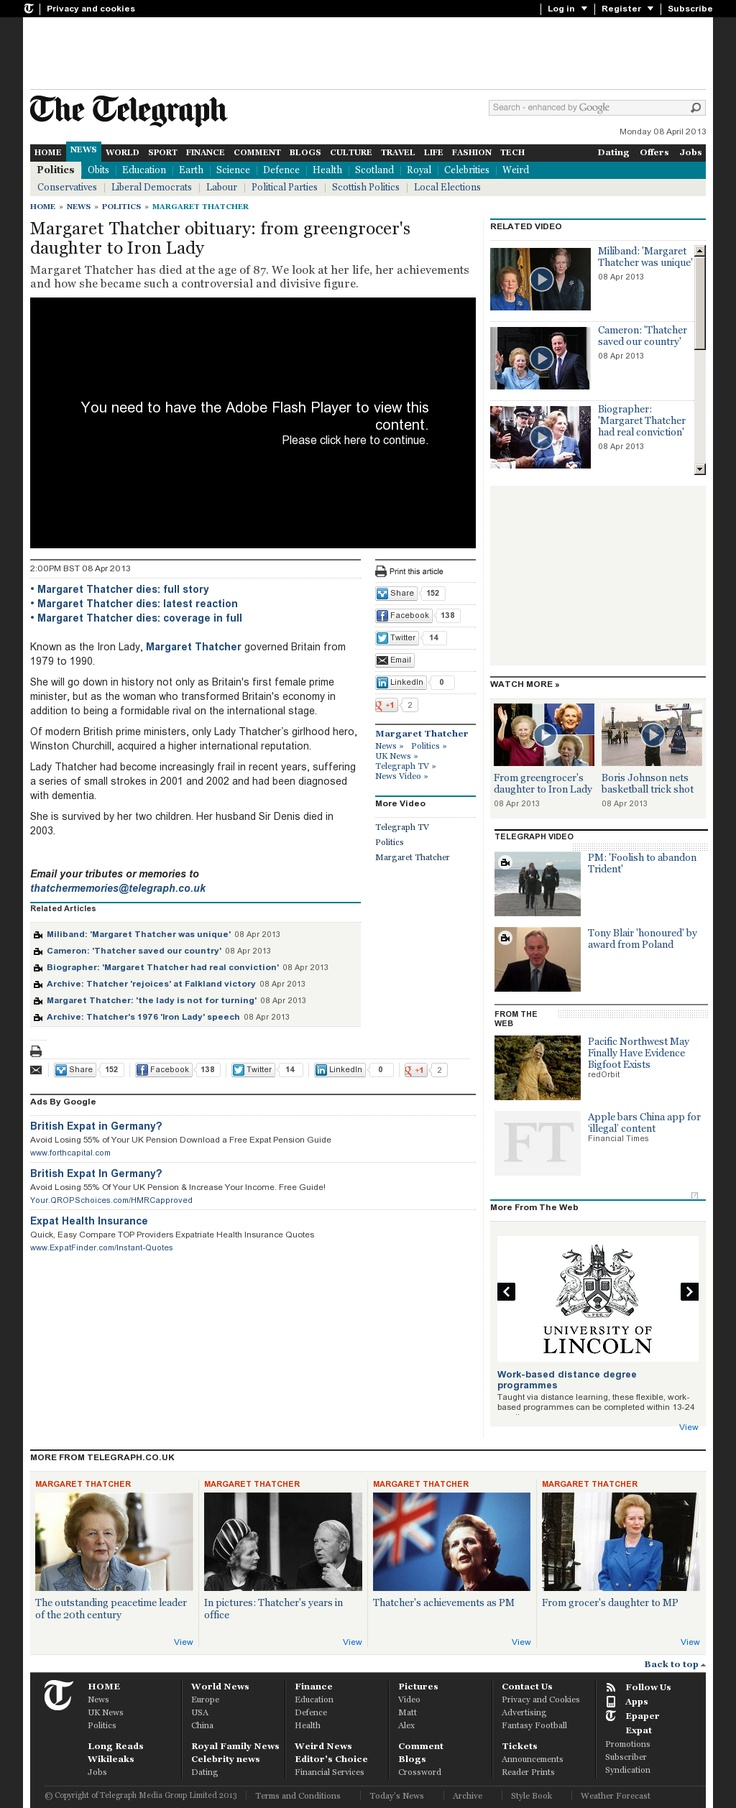 Click to get screenshot of the web page being gallerified